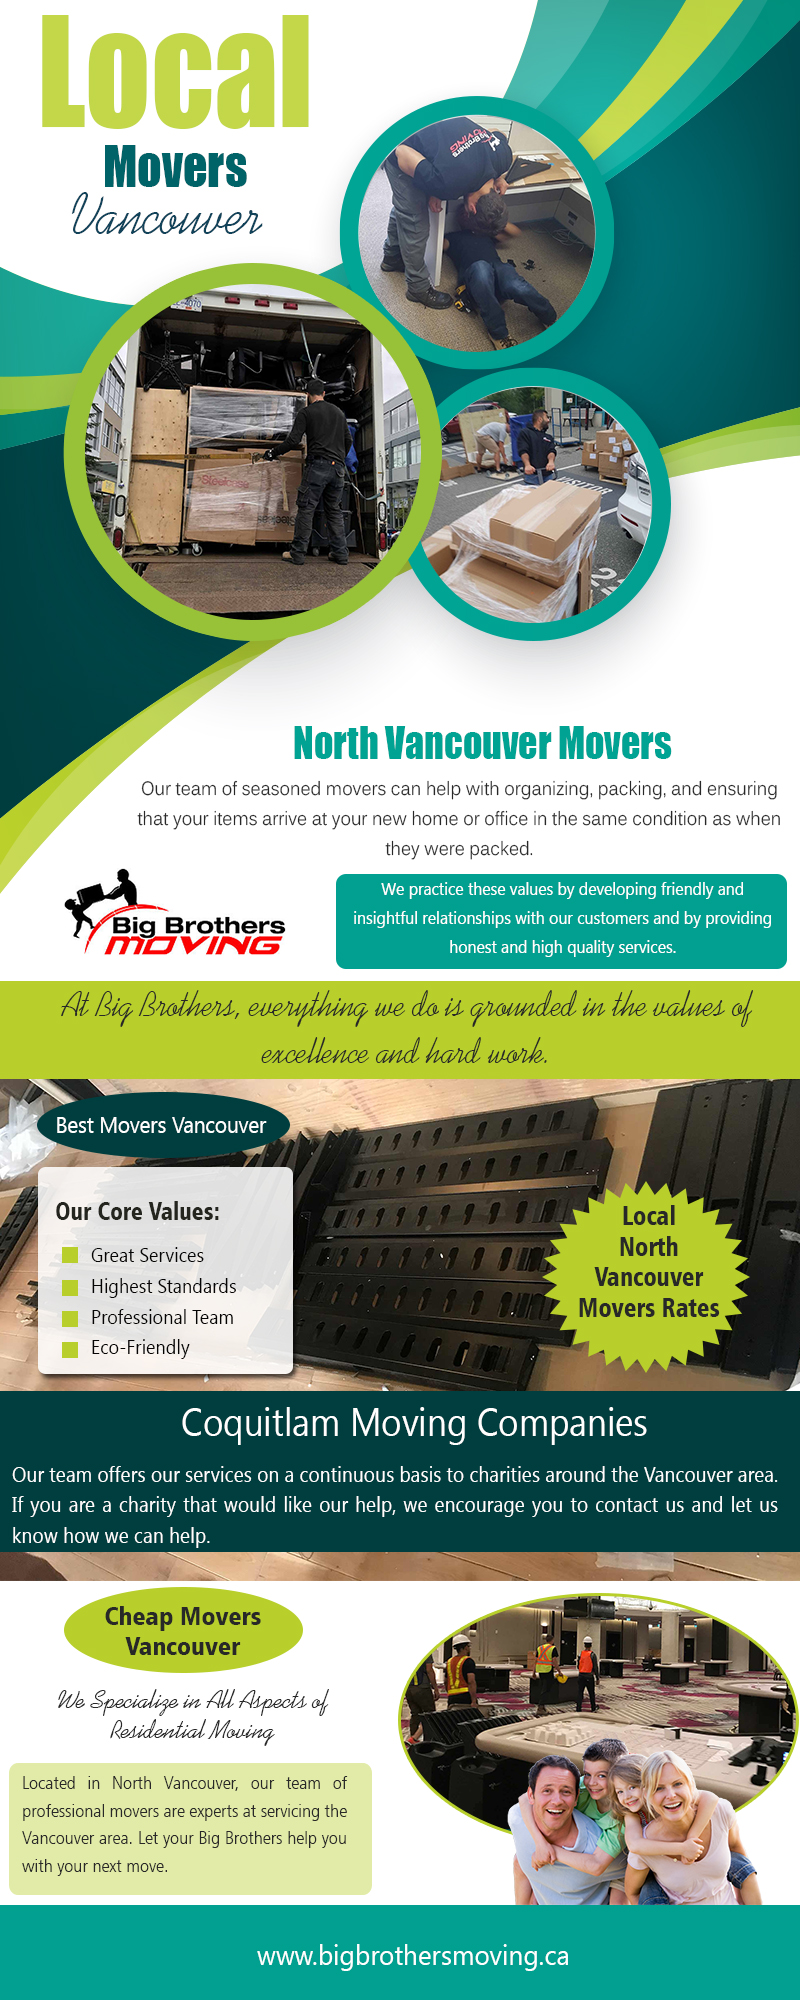 Local Movers Vancouver